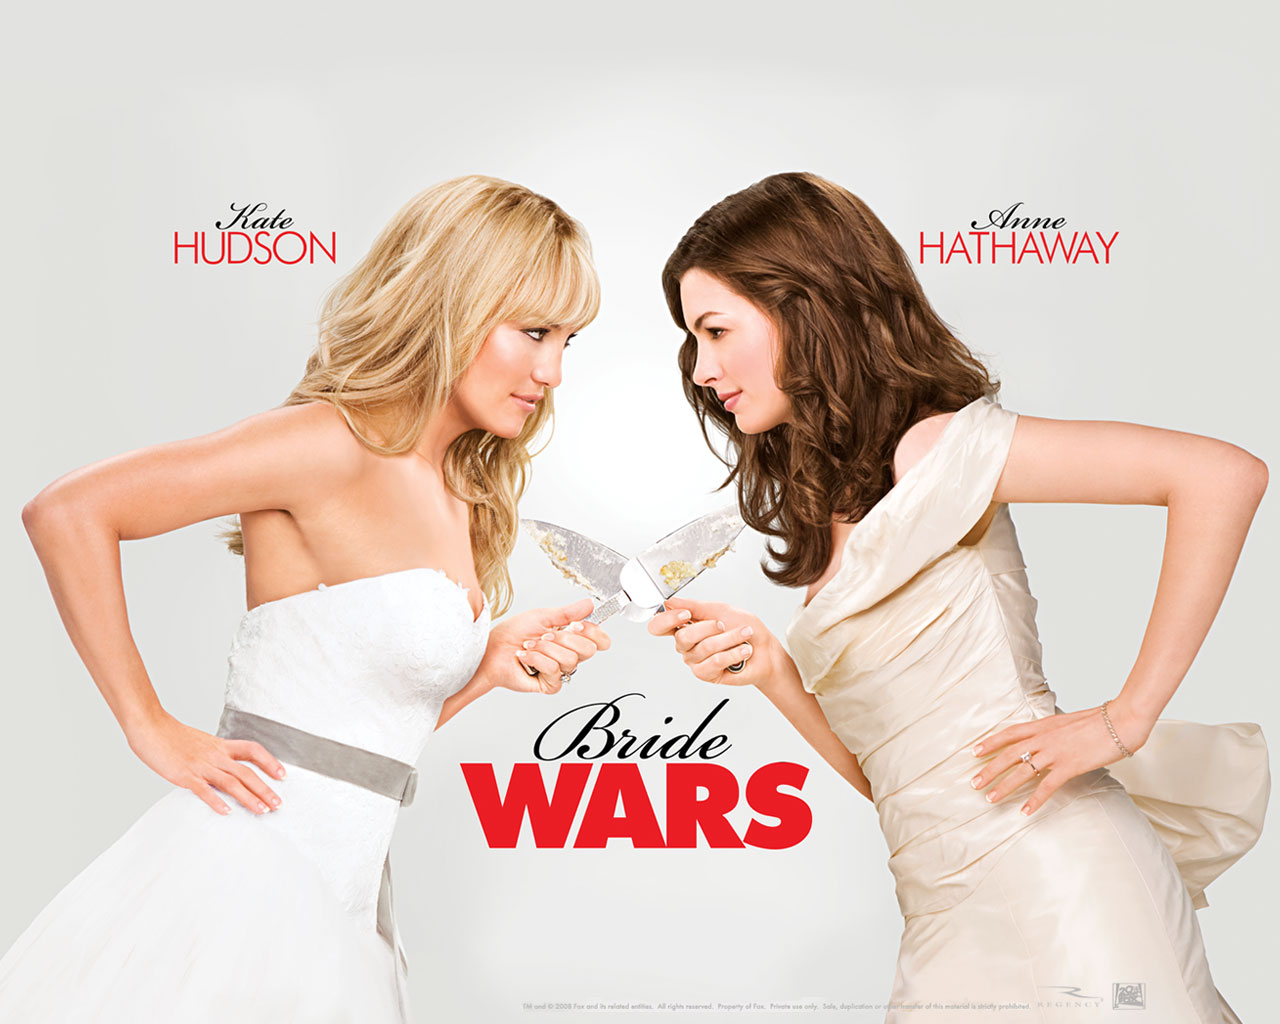 Bride Wars 690.31 Kb